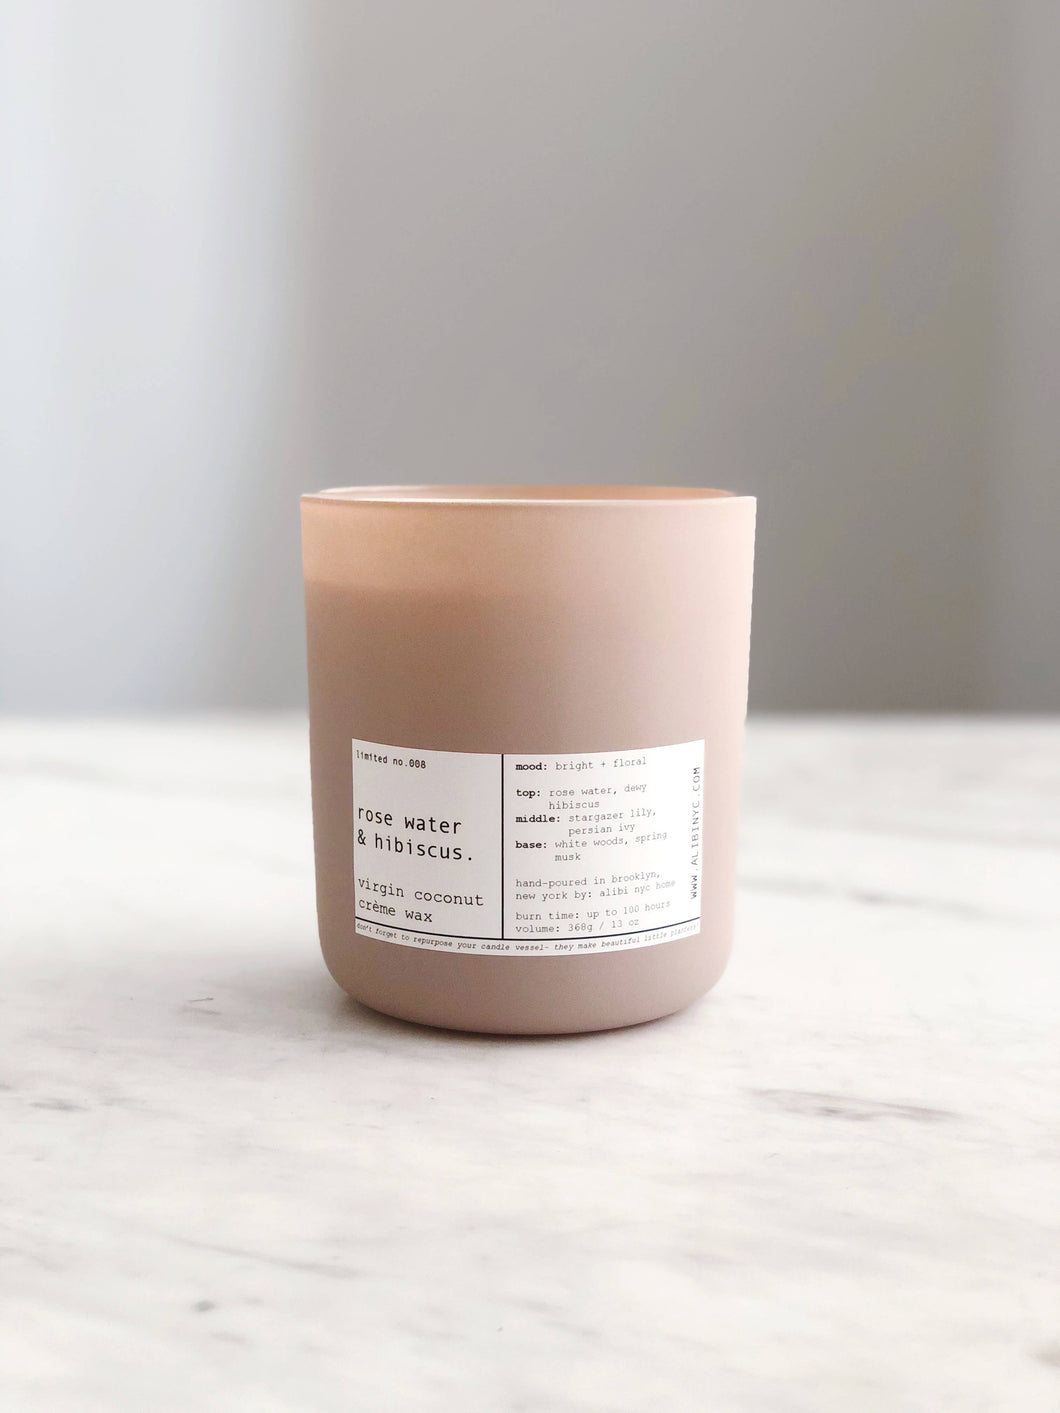 ALIBI NYC - ROSE WATER & HIBISCUS | VIRGIN COCONUT CRÈME CANDLE